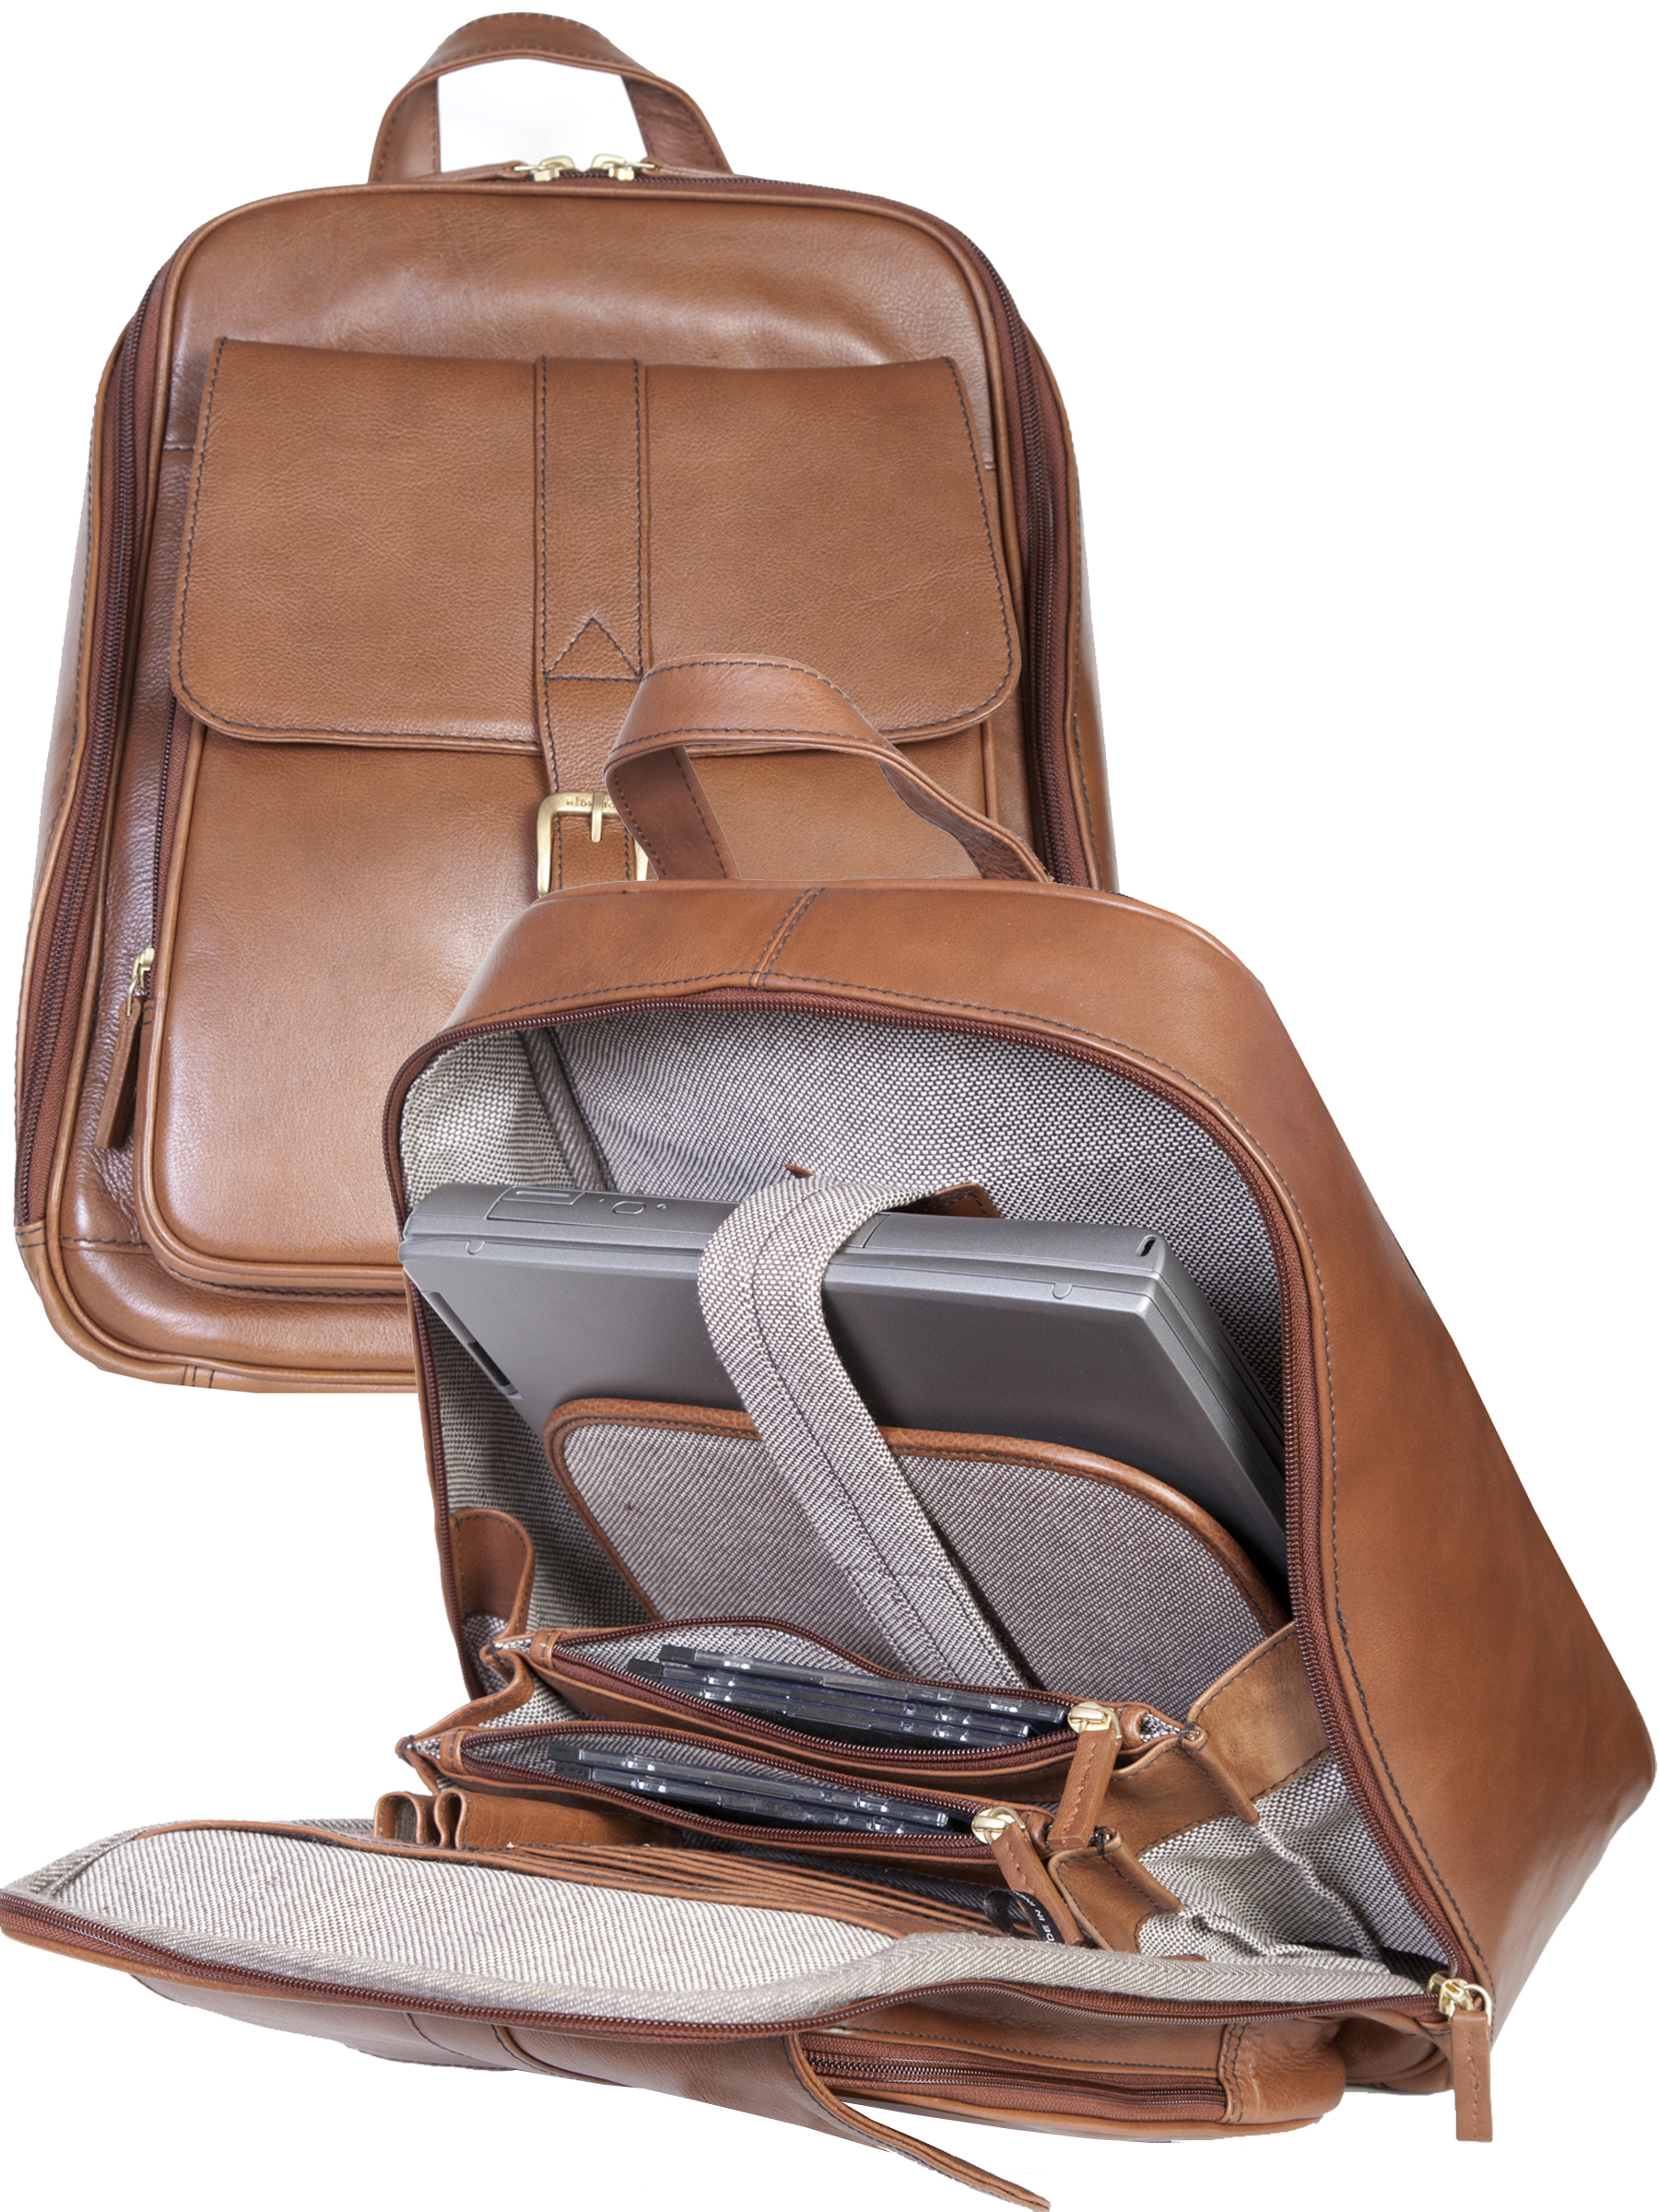 Business leather backpack